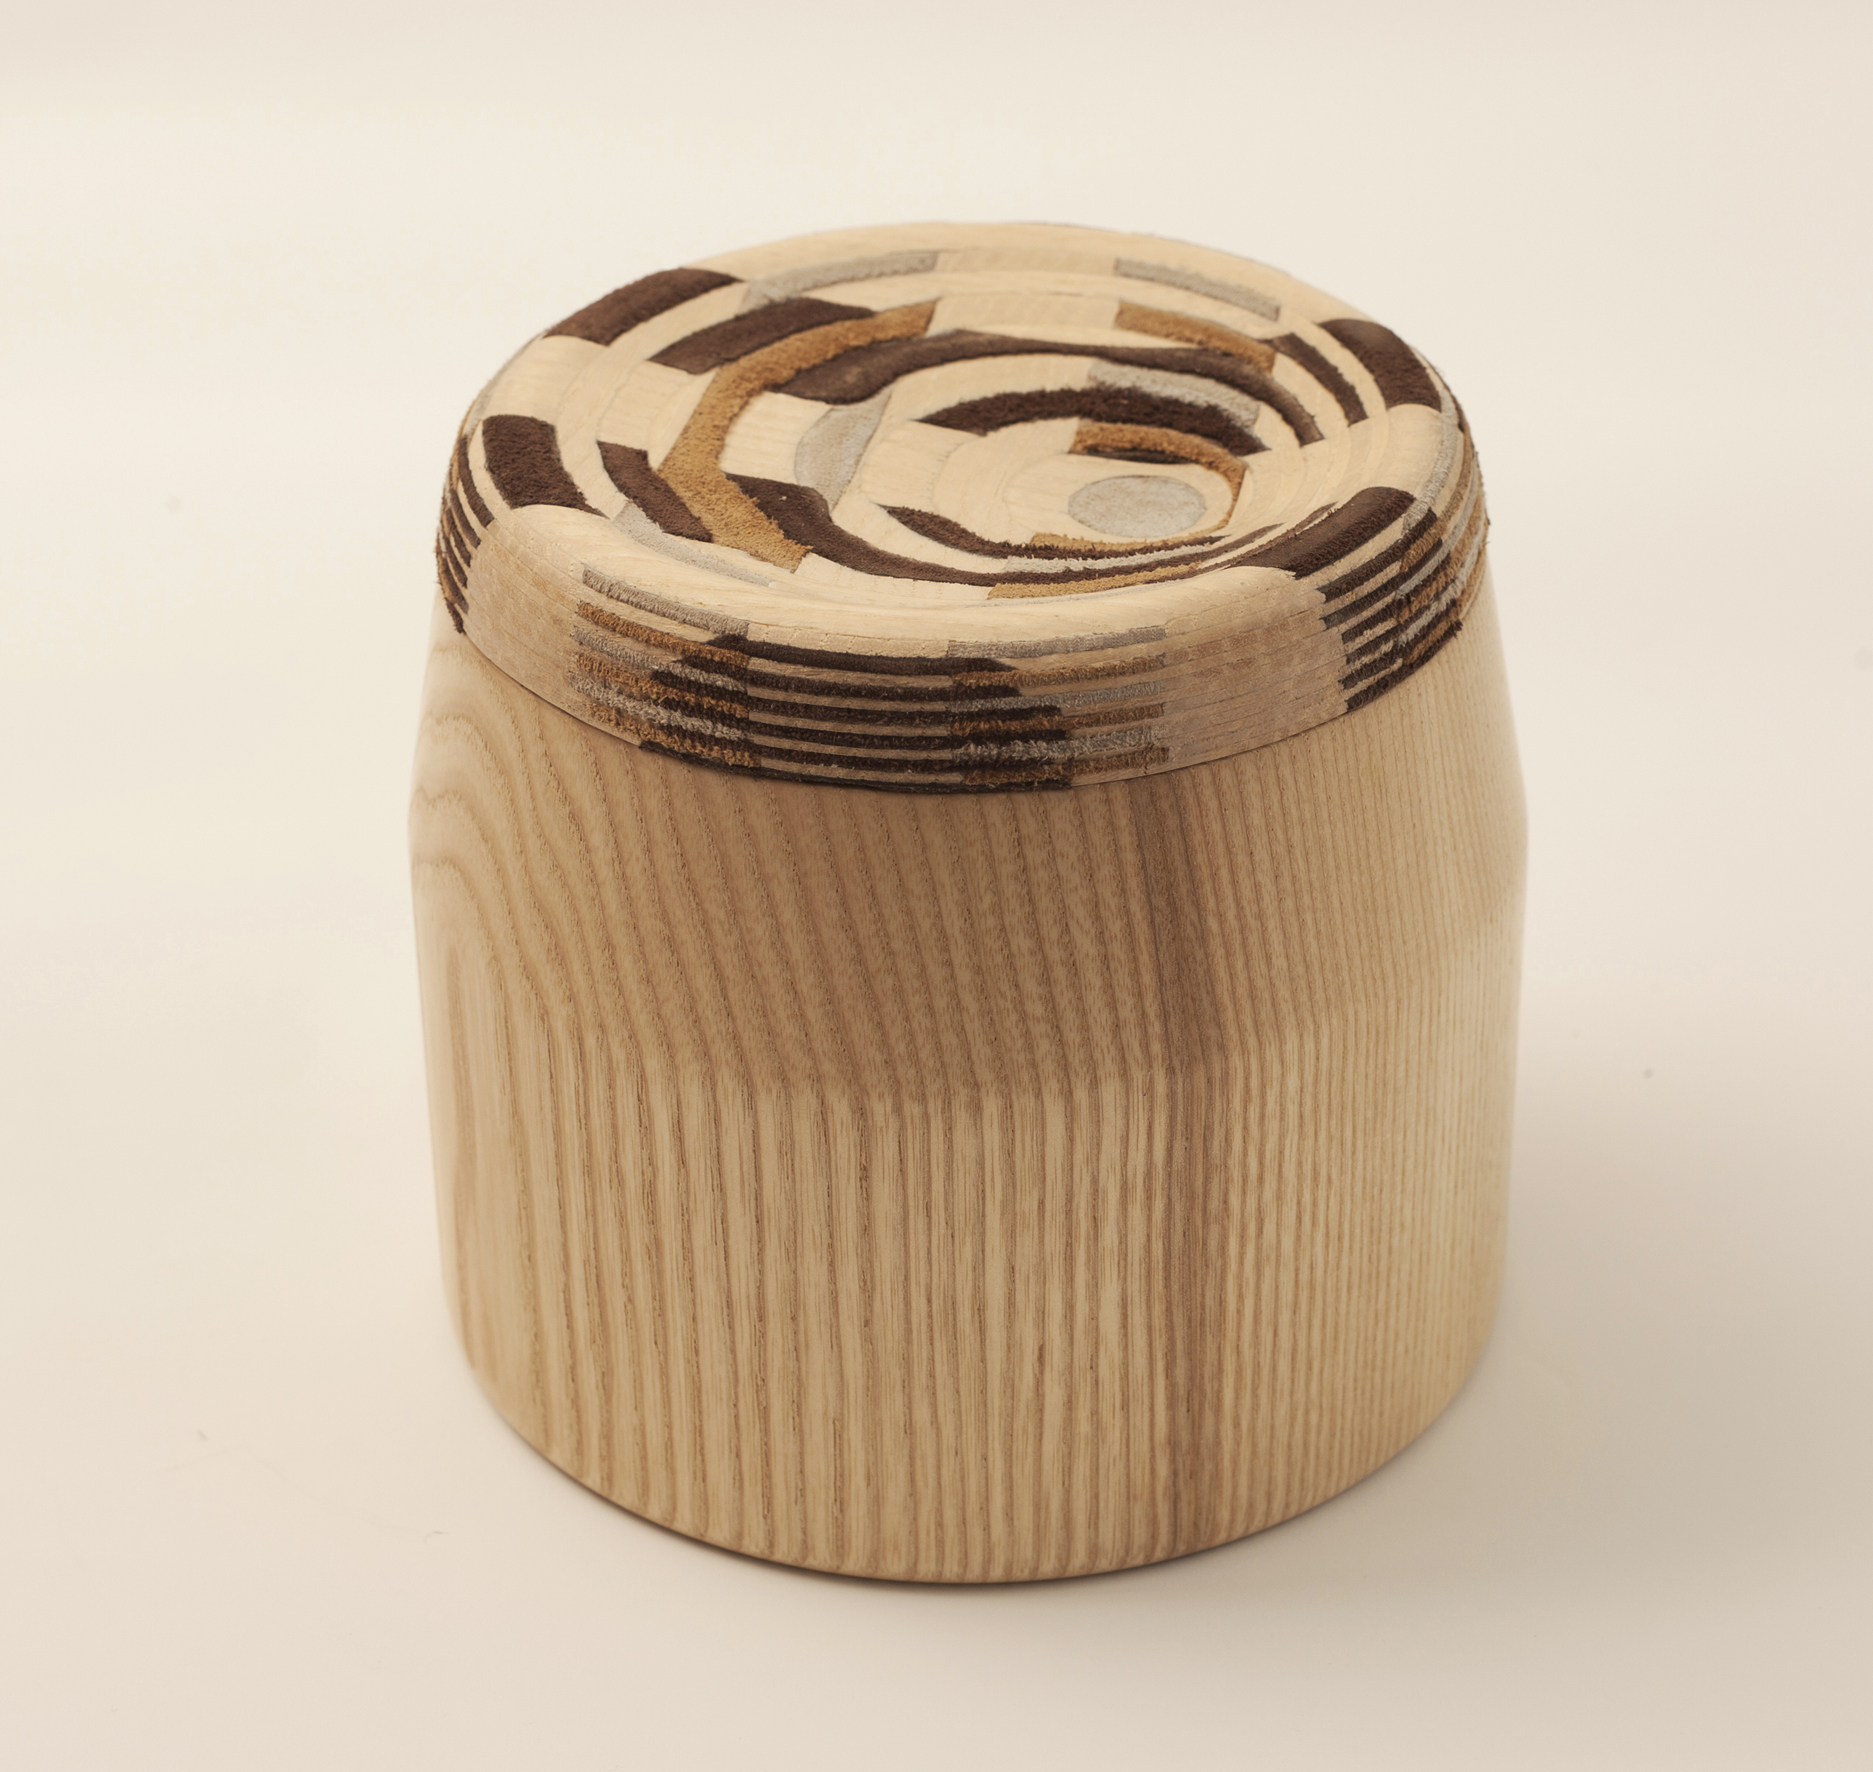 Cad Weaving Jar - <p>CAD weaving is a new material that brings a twist to traditional weaving techniques. It is made by identical pieces of leather and veneer that glued together in a crisscross manner to form a block. The block is then programmed in 3D computer software to find the right pattern and shape and cut in a CNC machine to create the curved surface, revealing a different pattern in each cut. The use of the new semi fabric material on the lid of the wooden jars takes inspiration from classic kitchen jars with patchwork fabric covers.</p>